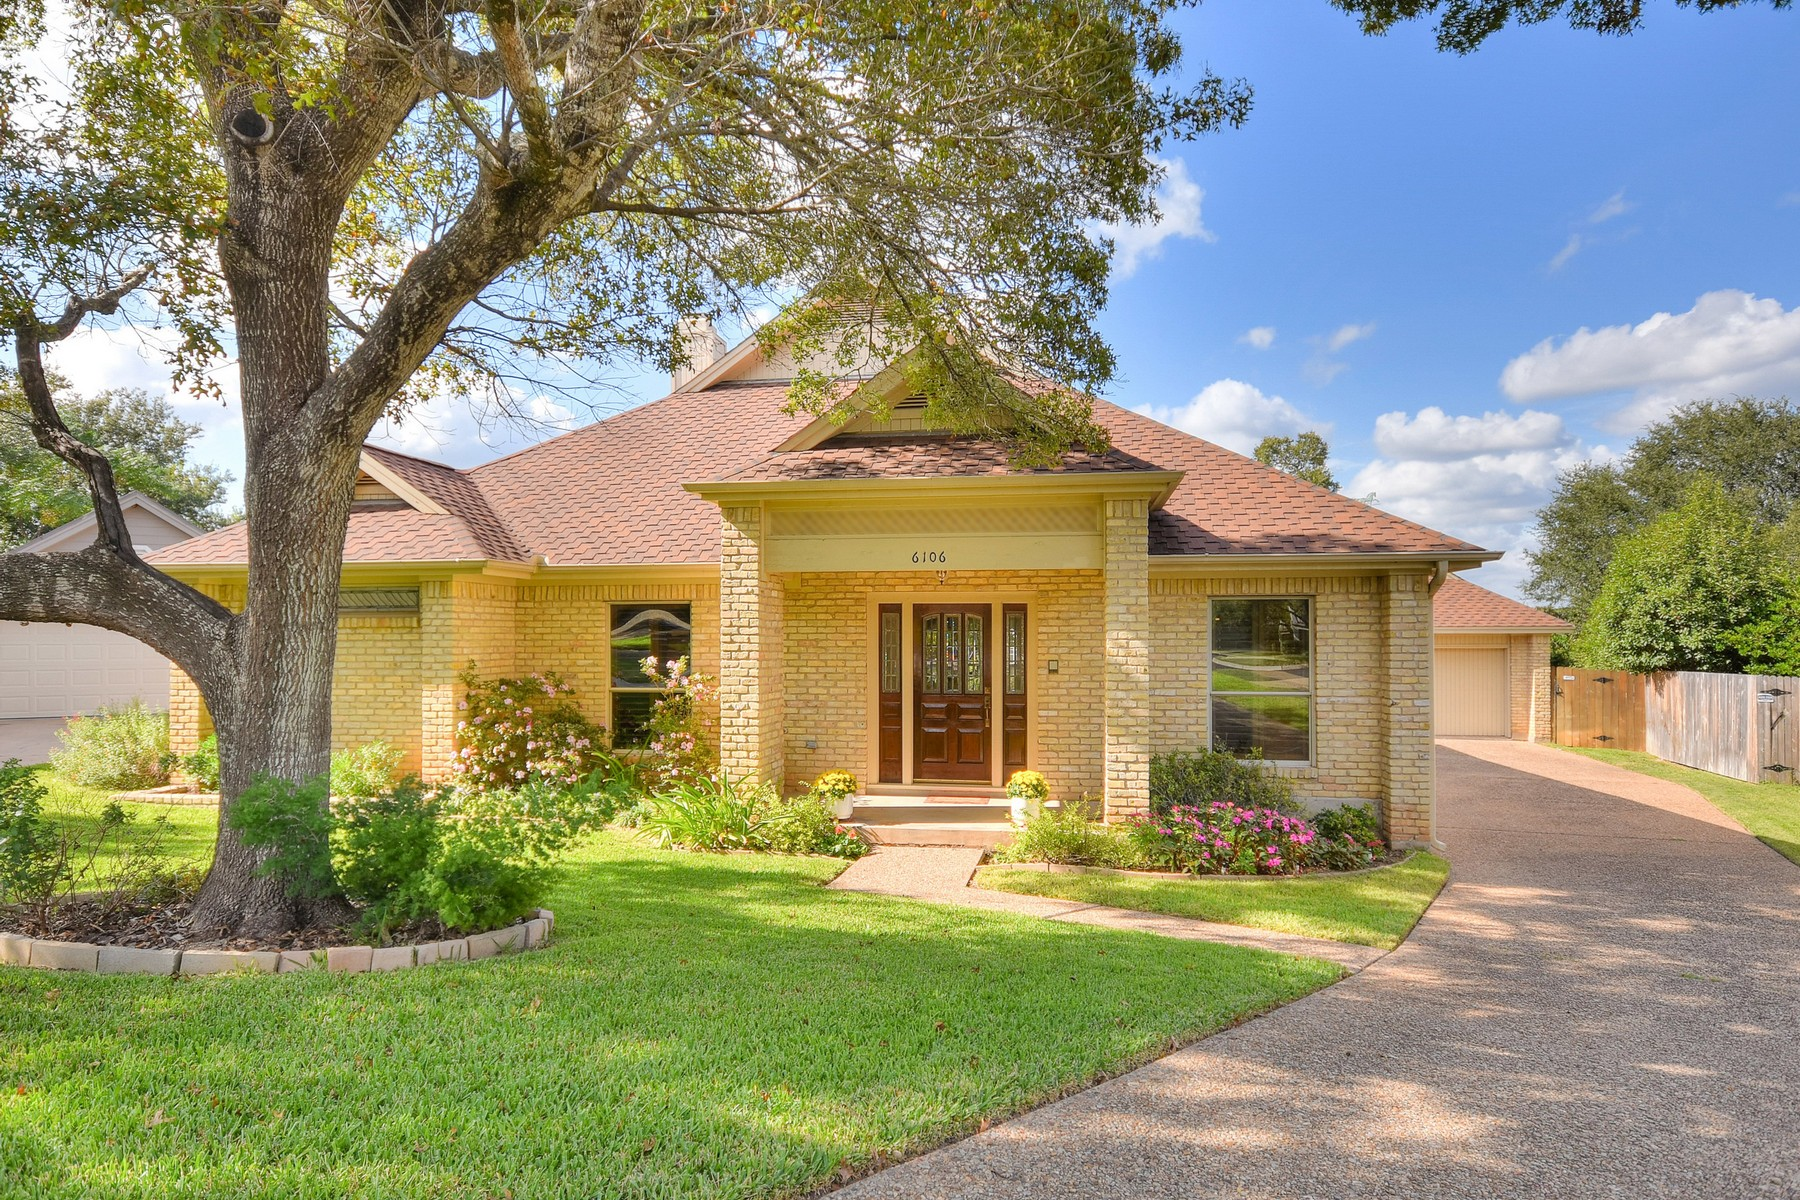 Single Family Home for Sale at Wonderful Home on Davenport Cul-de-sac 6106 Nashua Ct Austin, Texas 78746 United States